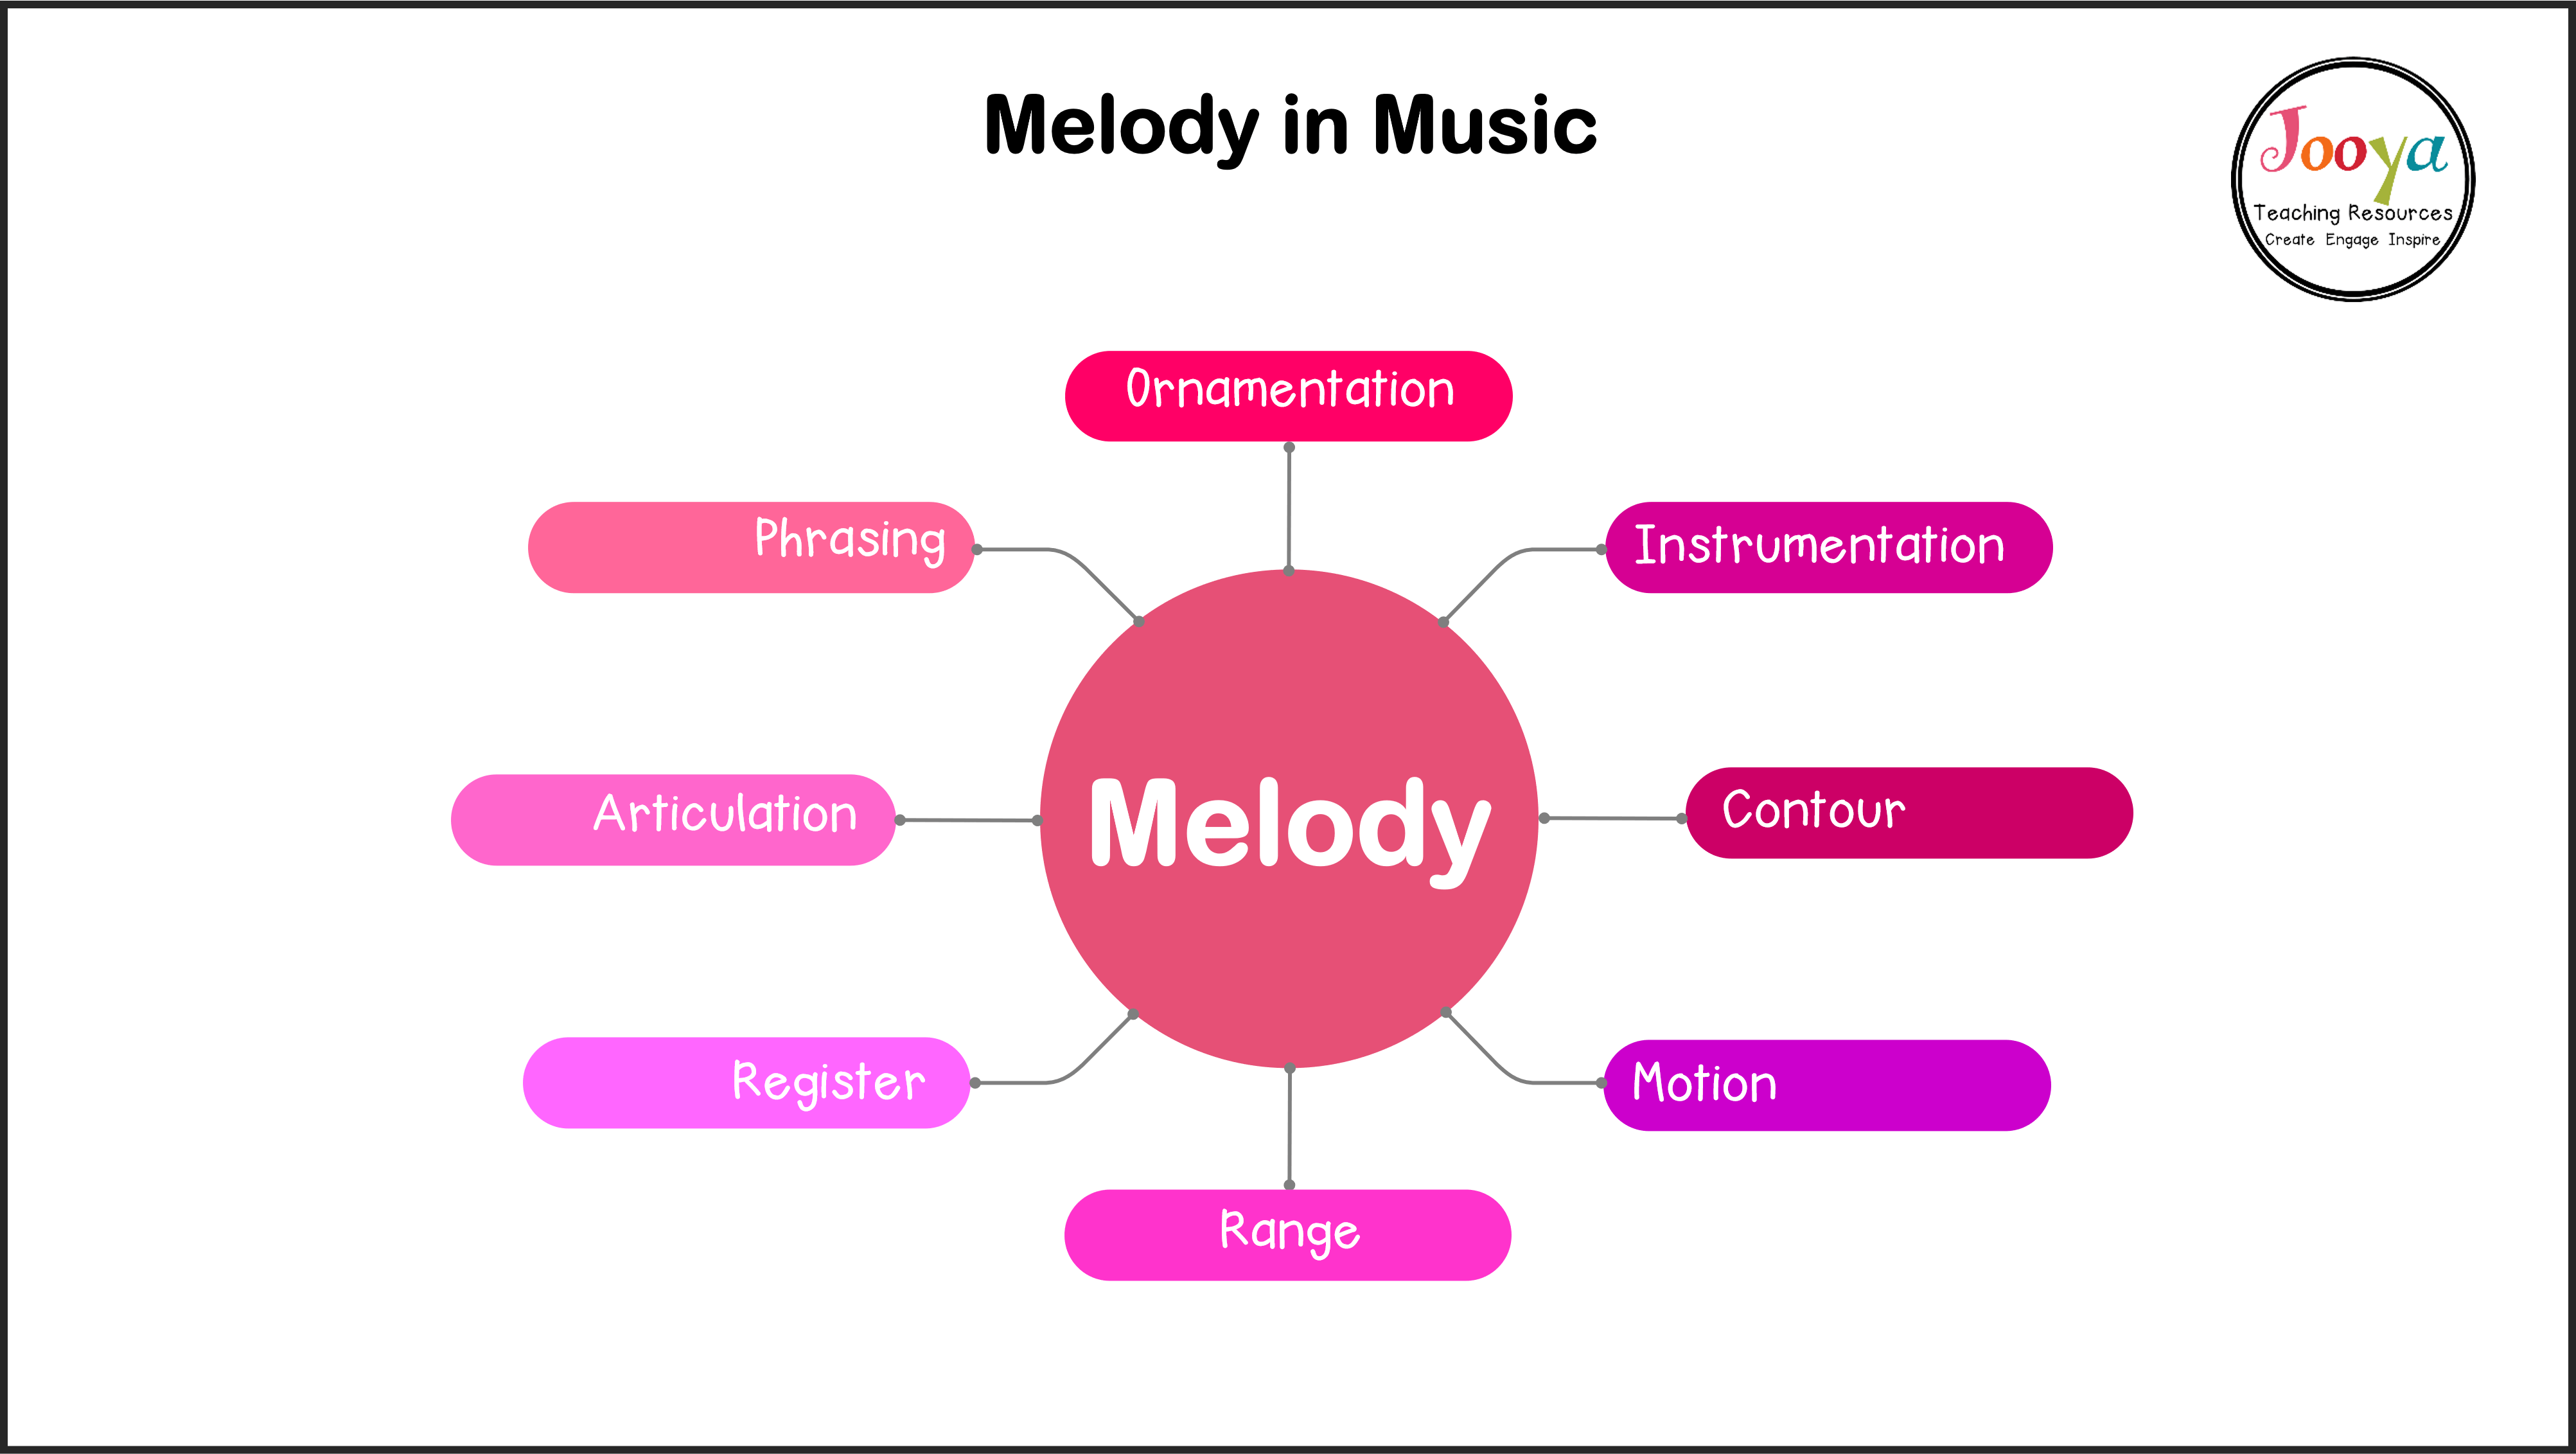 What is Melody in Music? - Jooya Teaching Resources